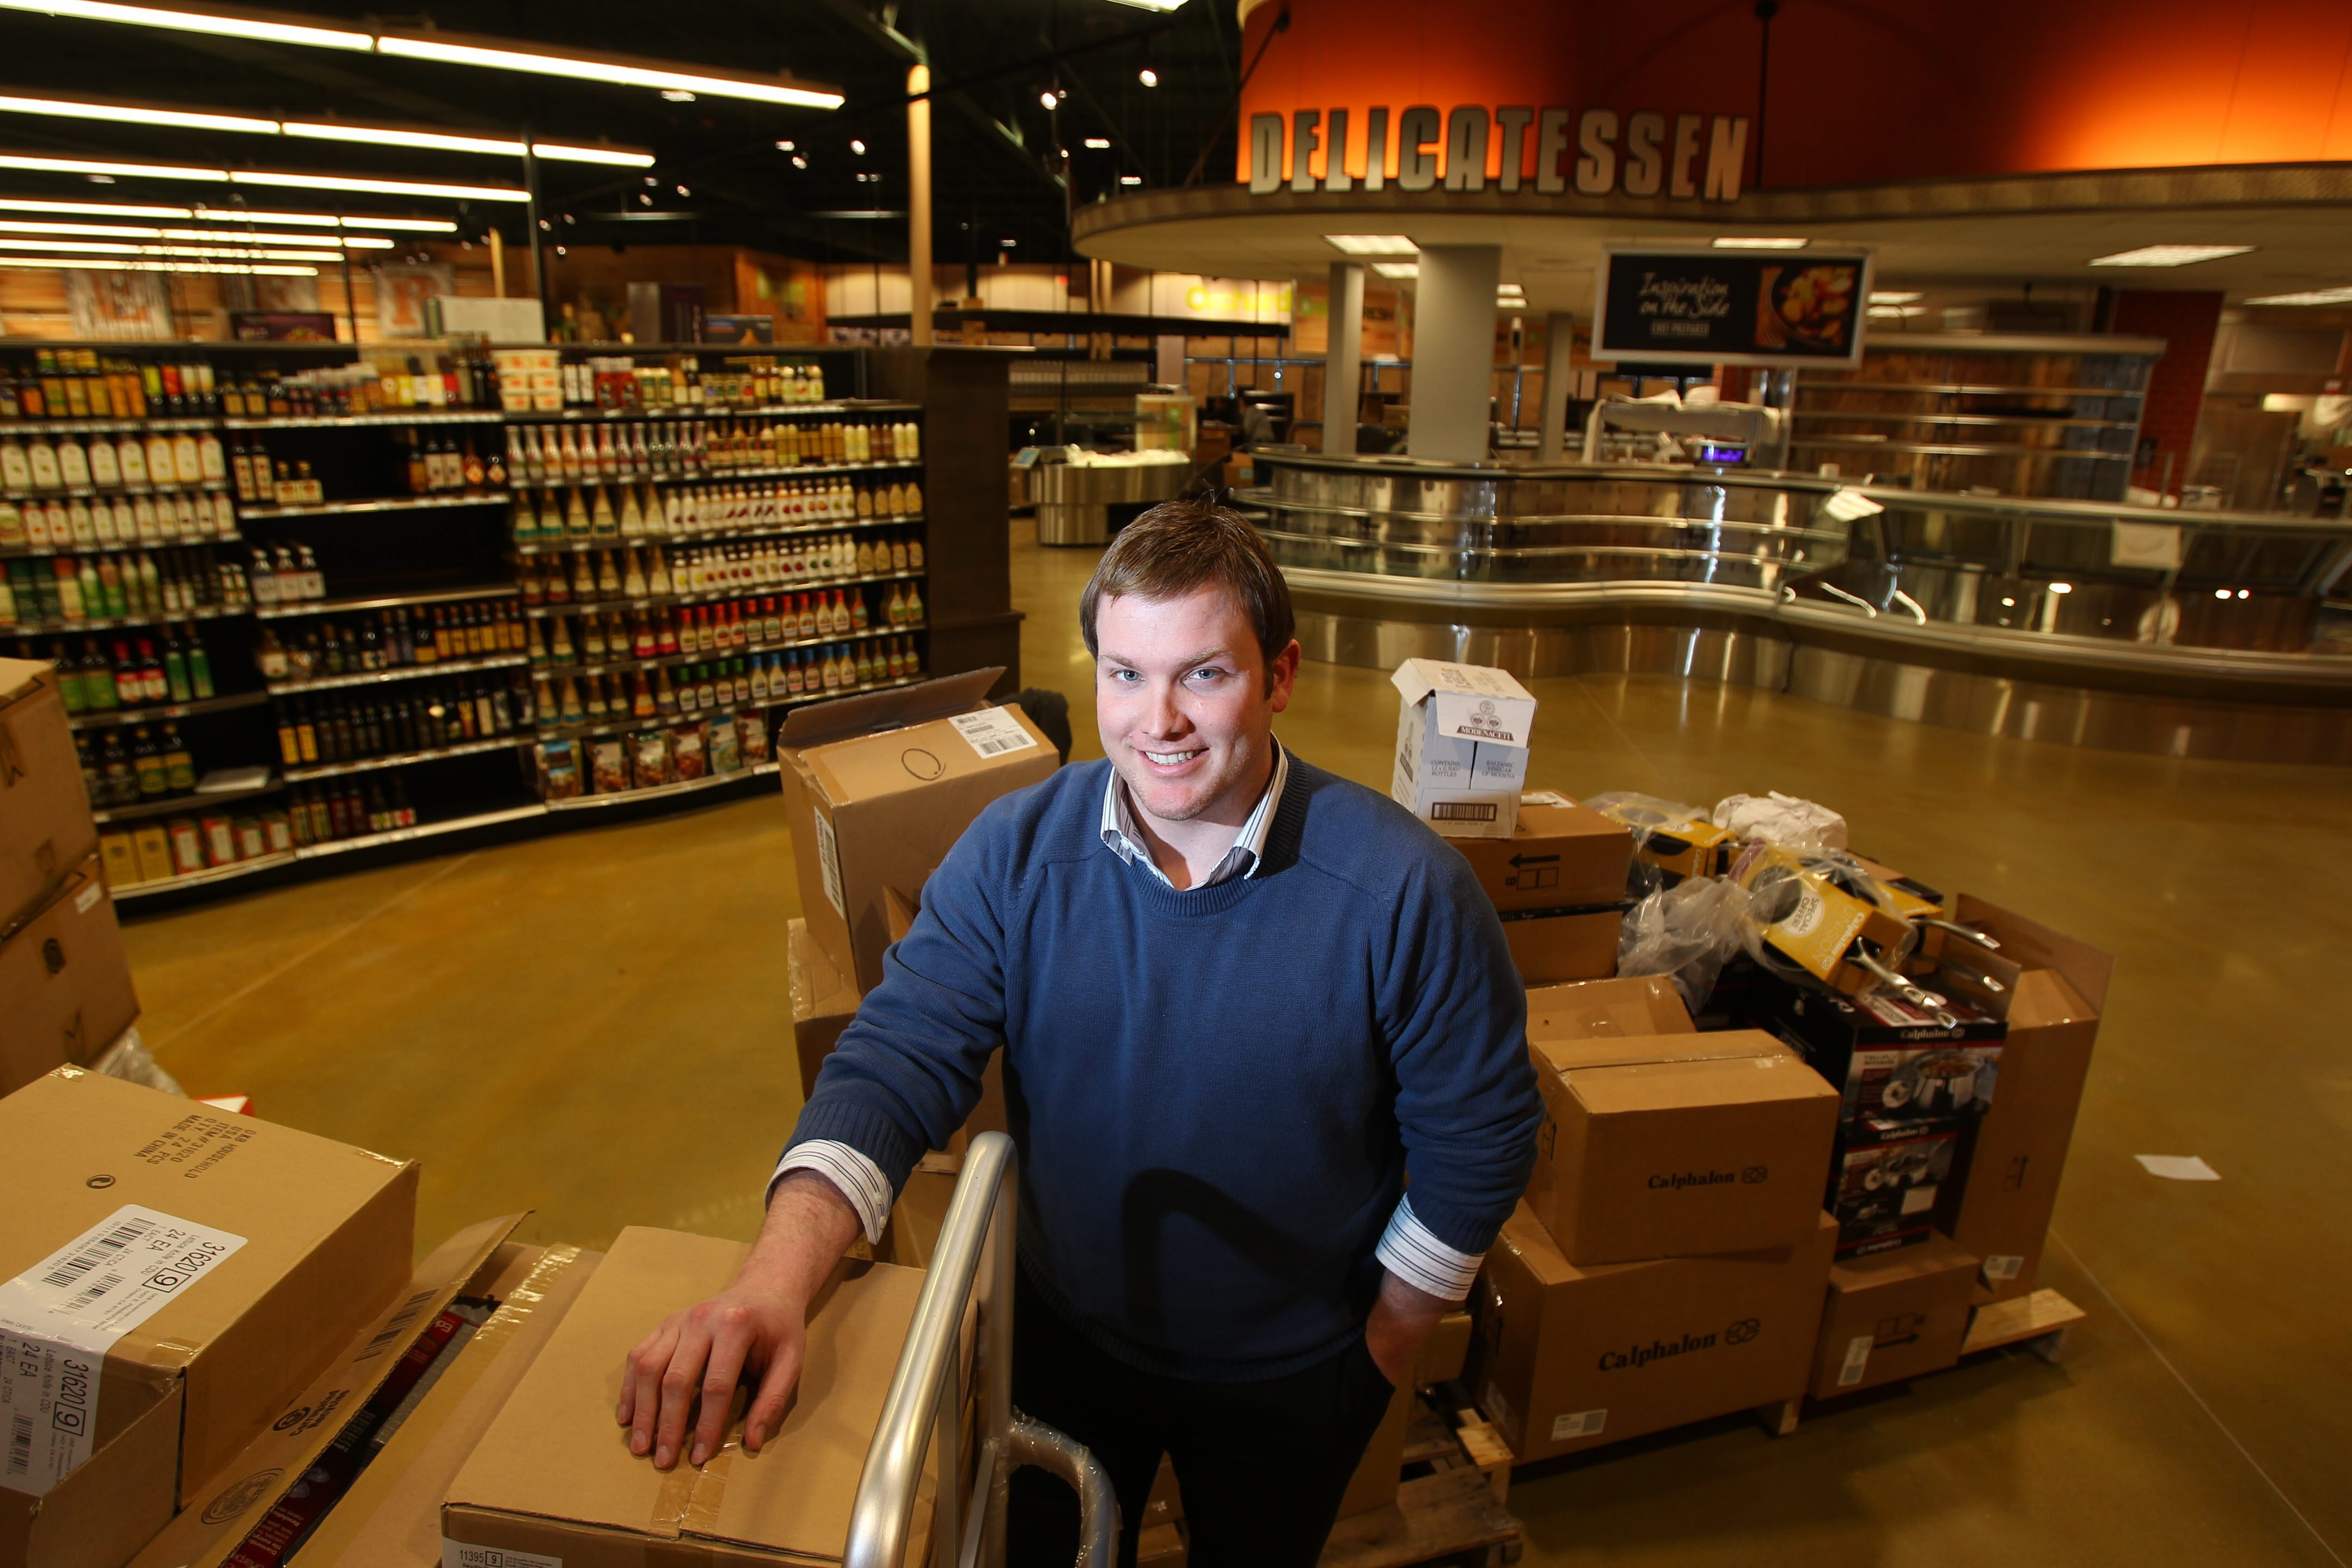 Store director Kevin Donovan was lured back to the region to oversee the new concept store that Tops hopes  will appeal  to 'foodies' and health-conscious  shoppers.